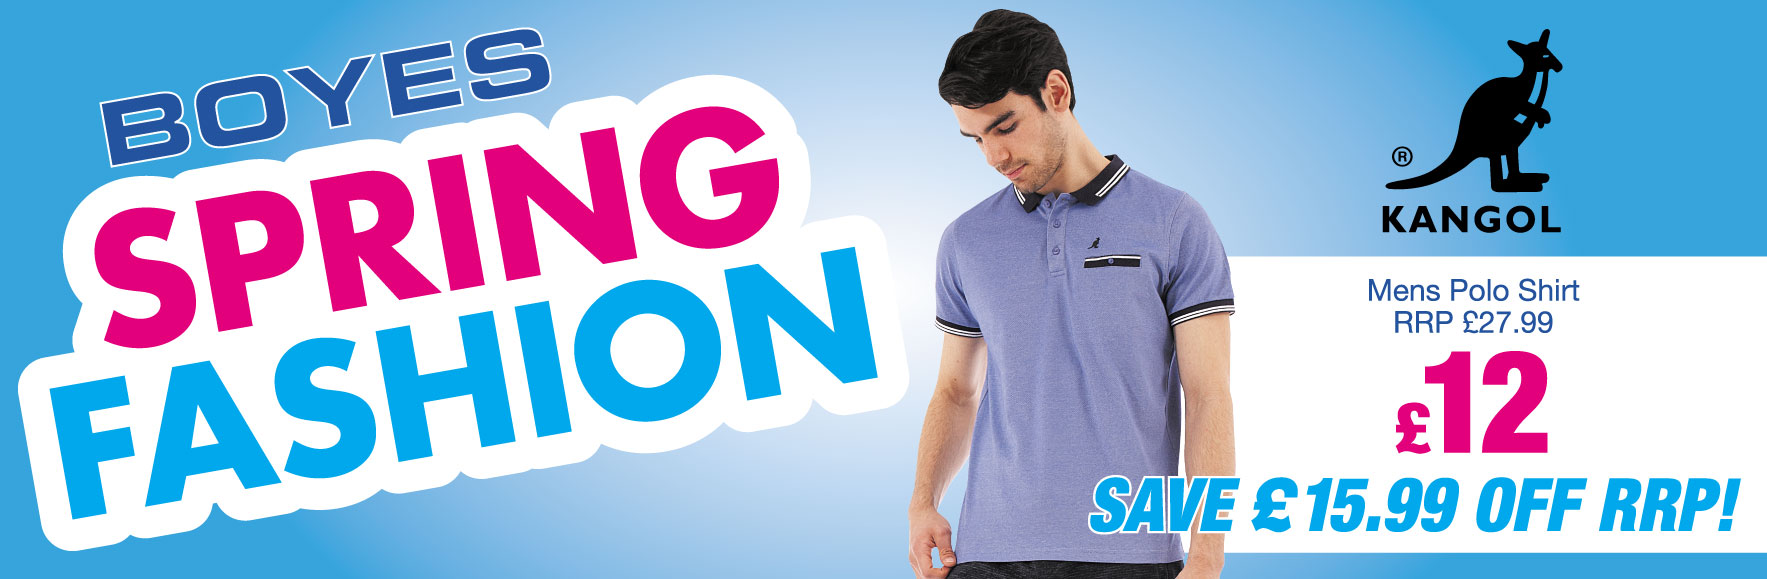 Men's 'Kangol' Polo Shirt. RRP £27.99. SAVE £15.99 OFF RRP! ONLY £12